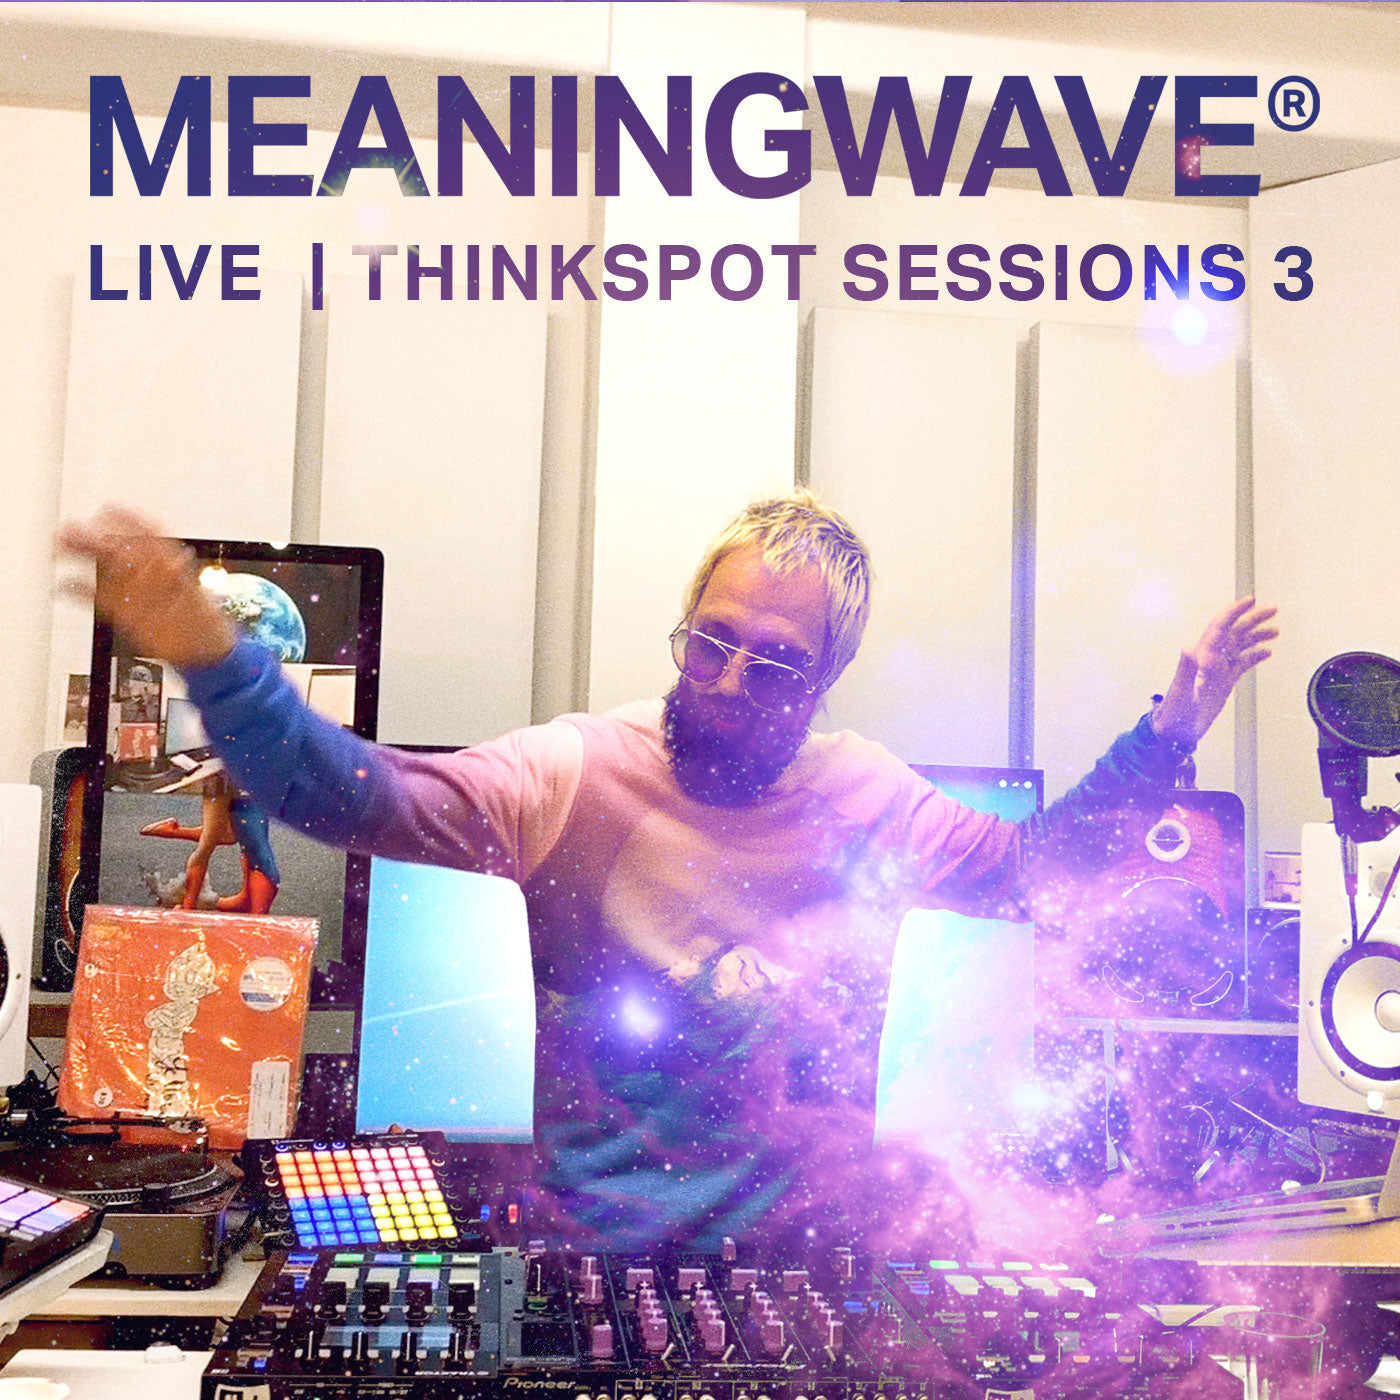 MEANINGWAVE LIVE - Thinkspot Sessions 3